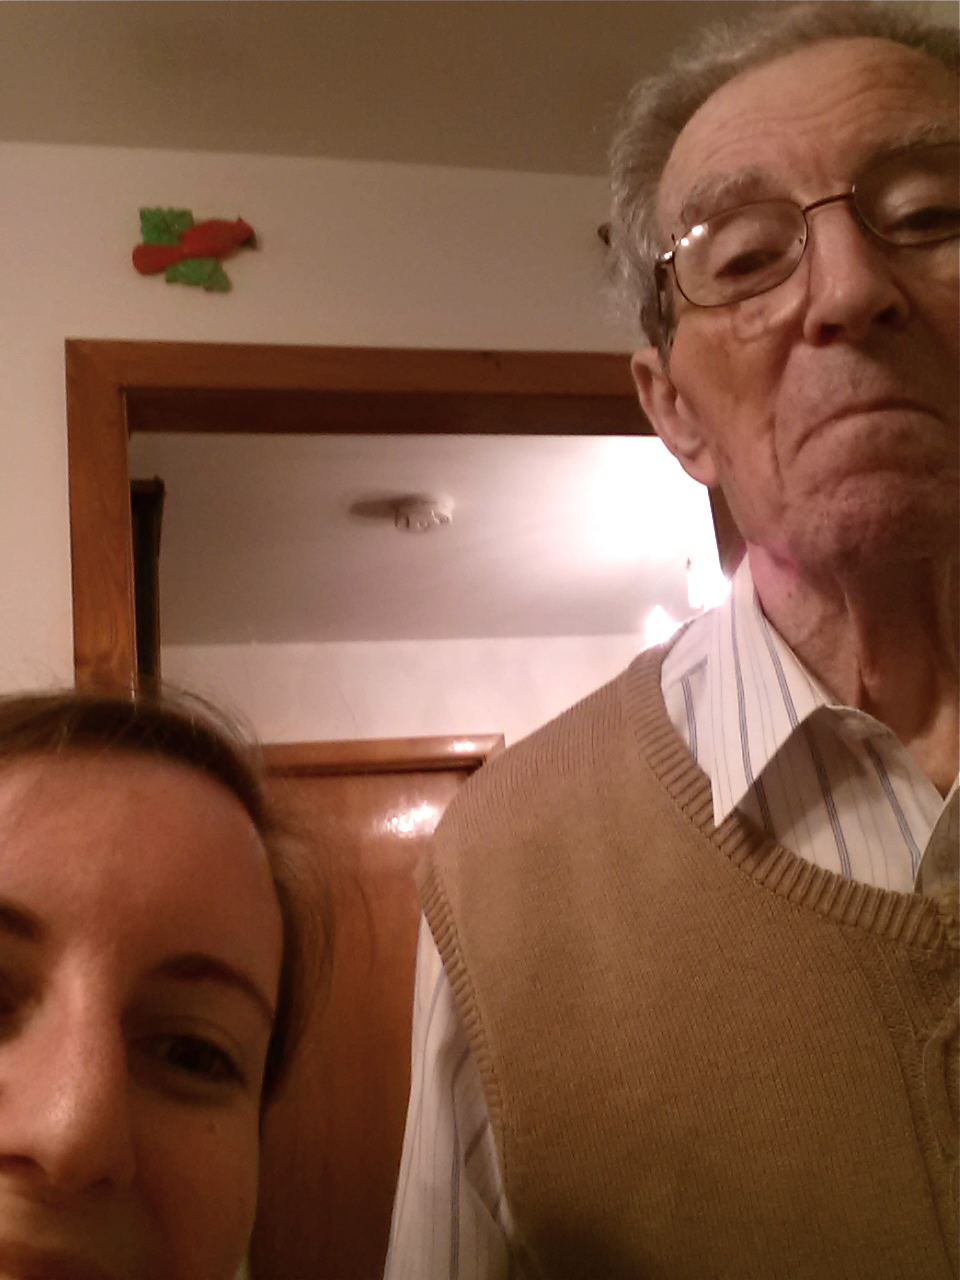 Showing Nonno how to take a selfie